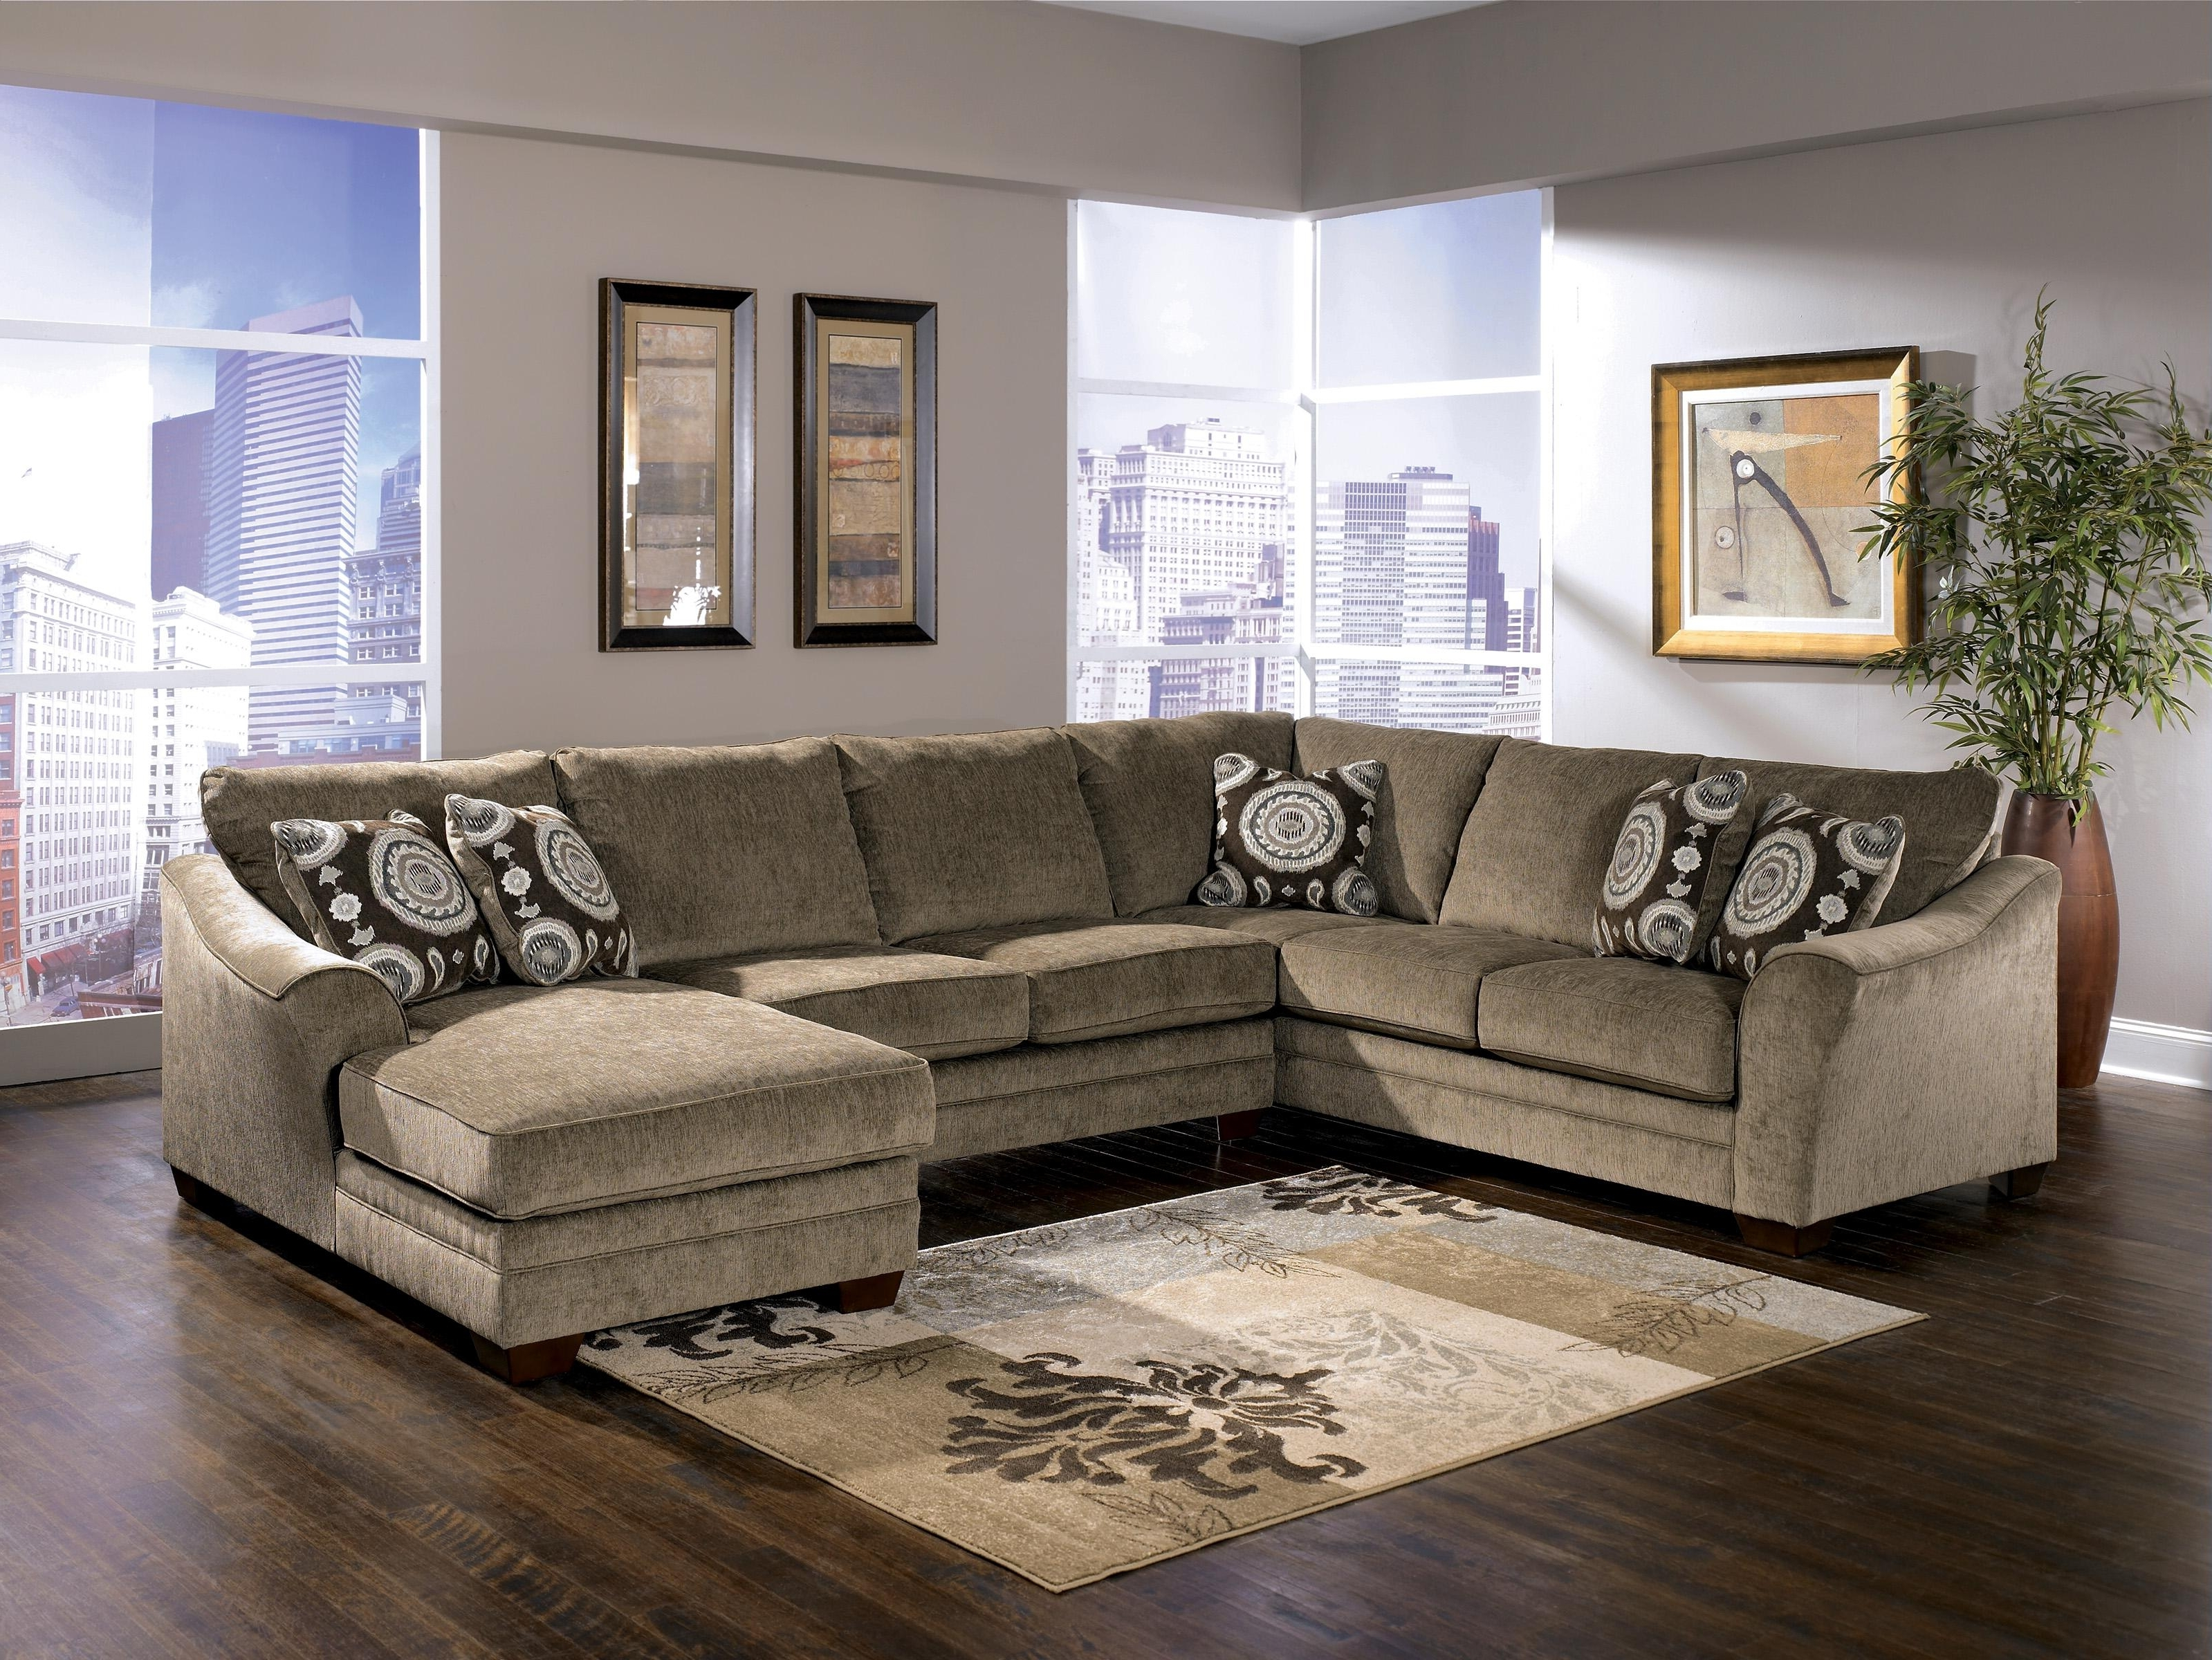 Nebraska Furniture Mart Loveseats Mrs B's Clearance Discount Throughout Famous Kanes Sectional Sofas (View 11 of 15)